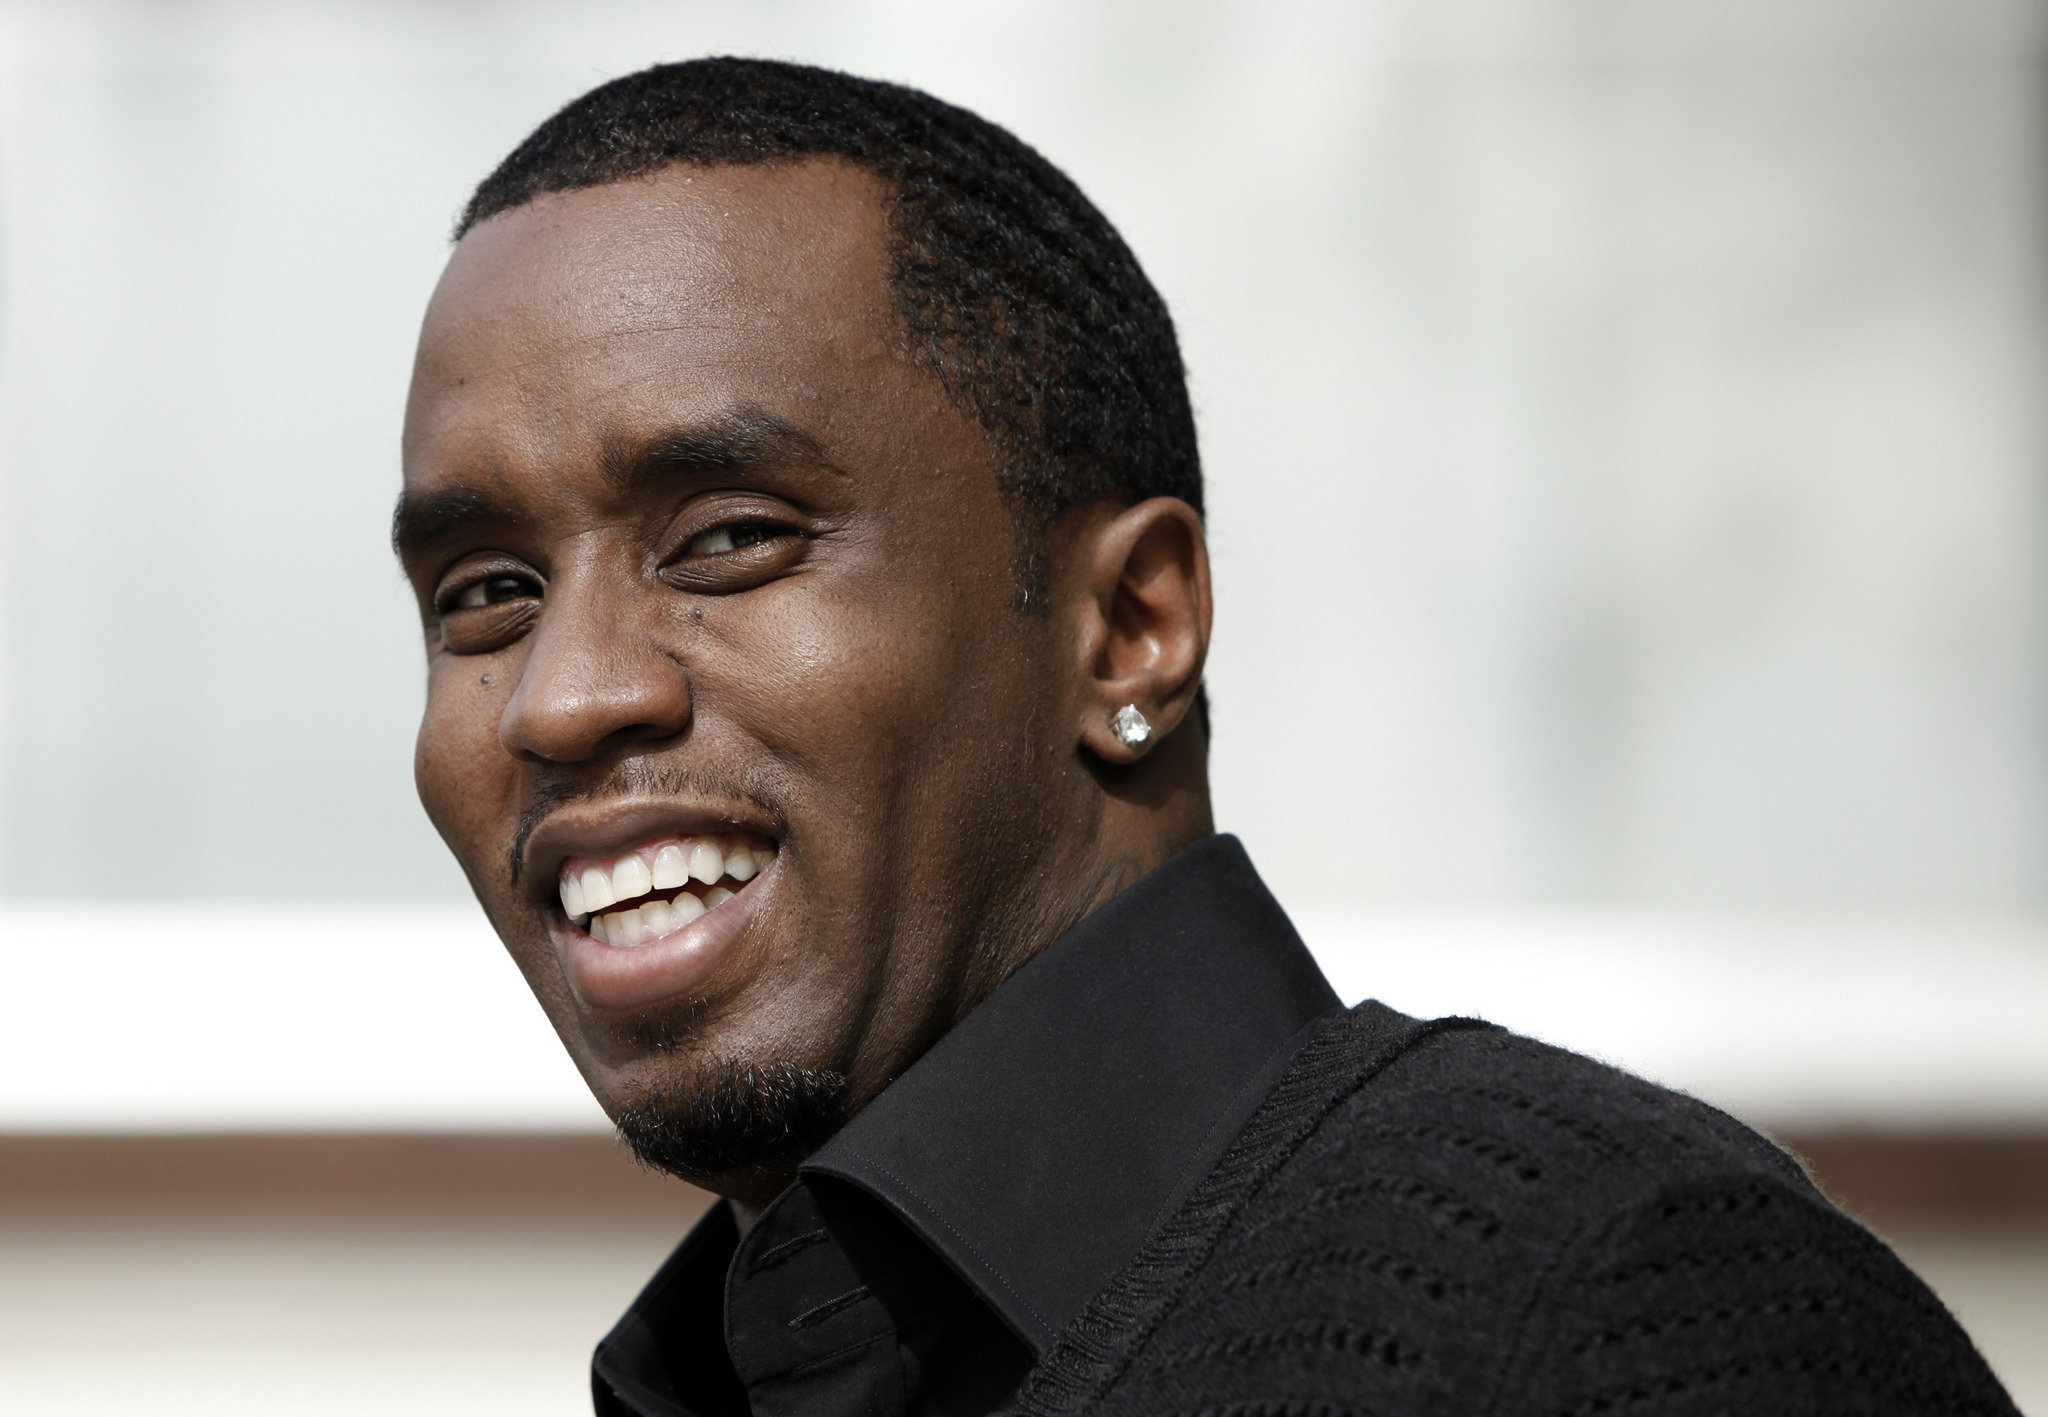 Rapper Sean Diddy Combs - age: 47